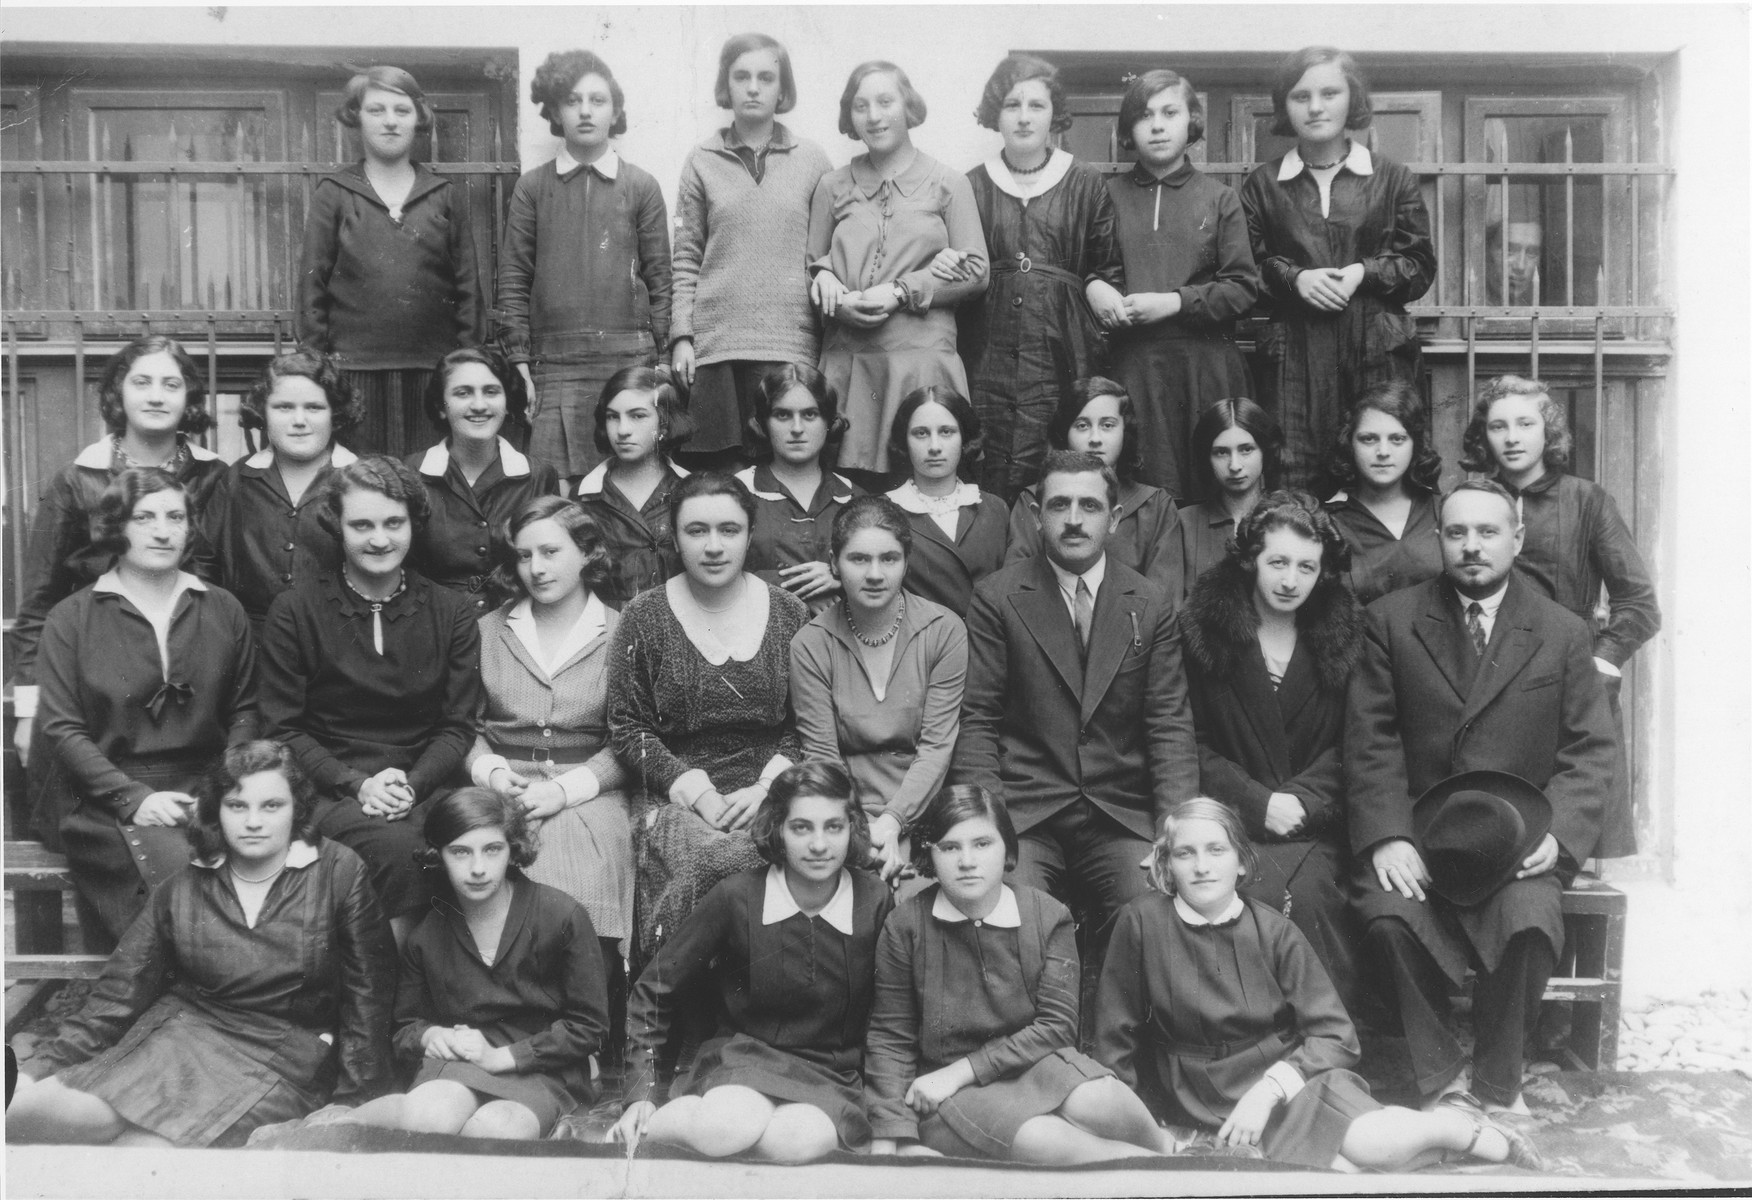 Lotte Gottfried (front row, right) with her classmates at the Hoffmann gymnasium in Czernowitz.